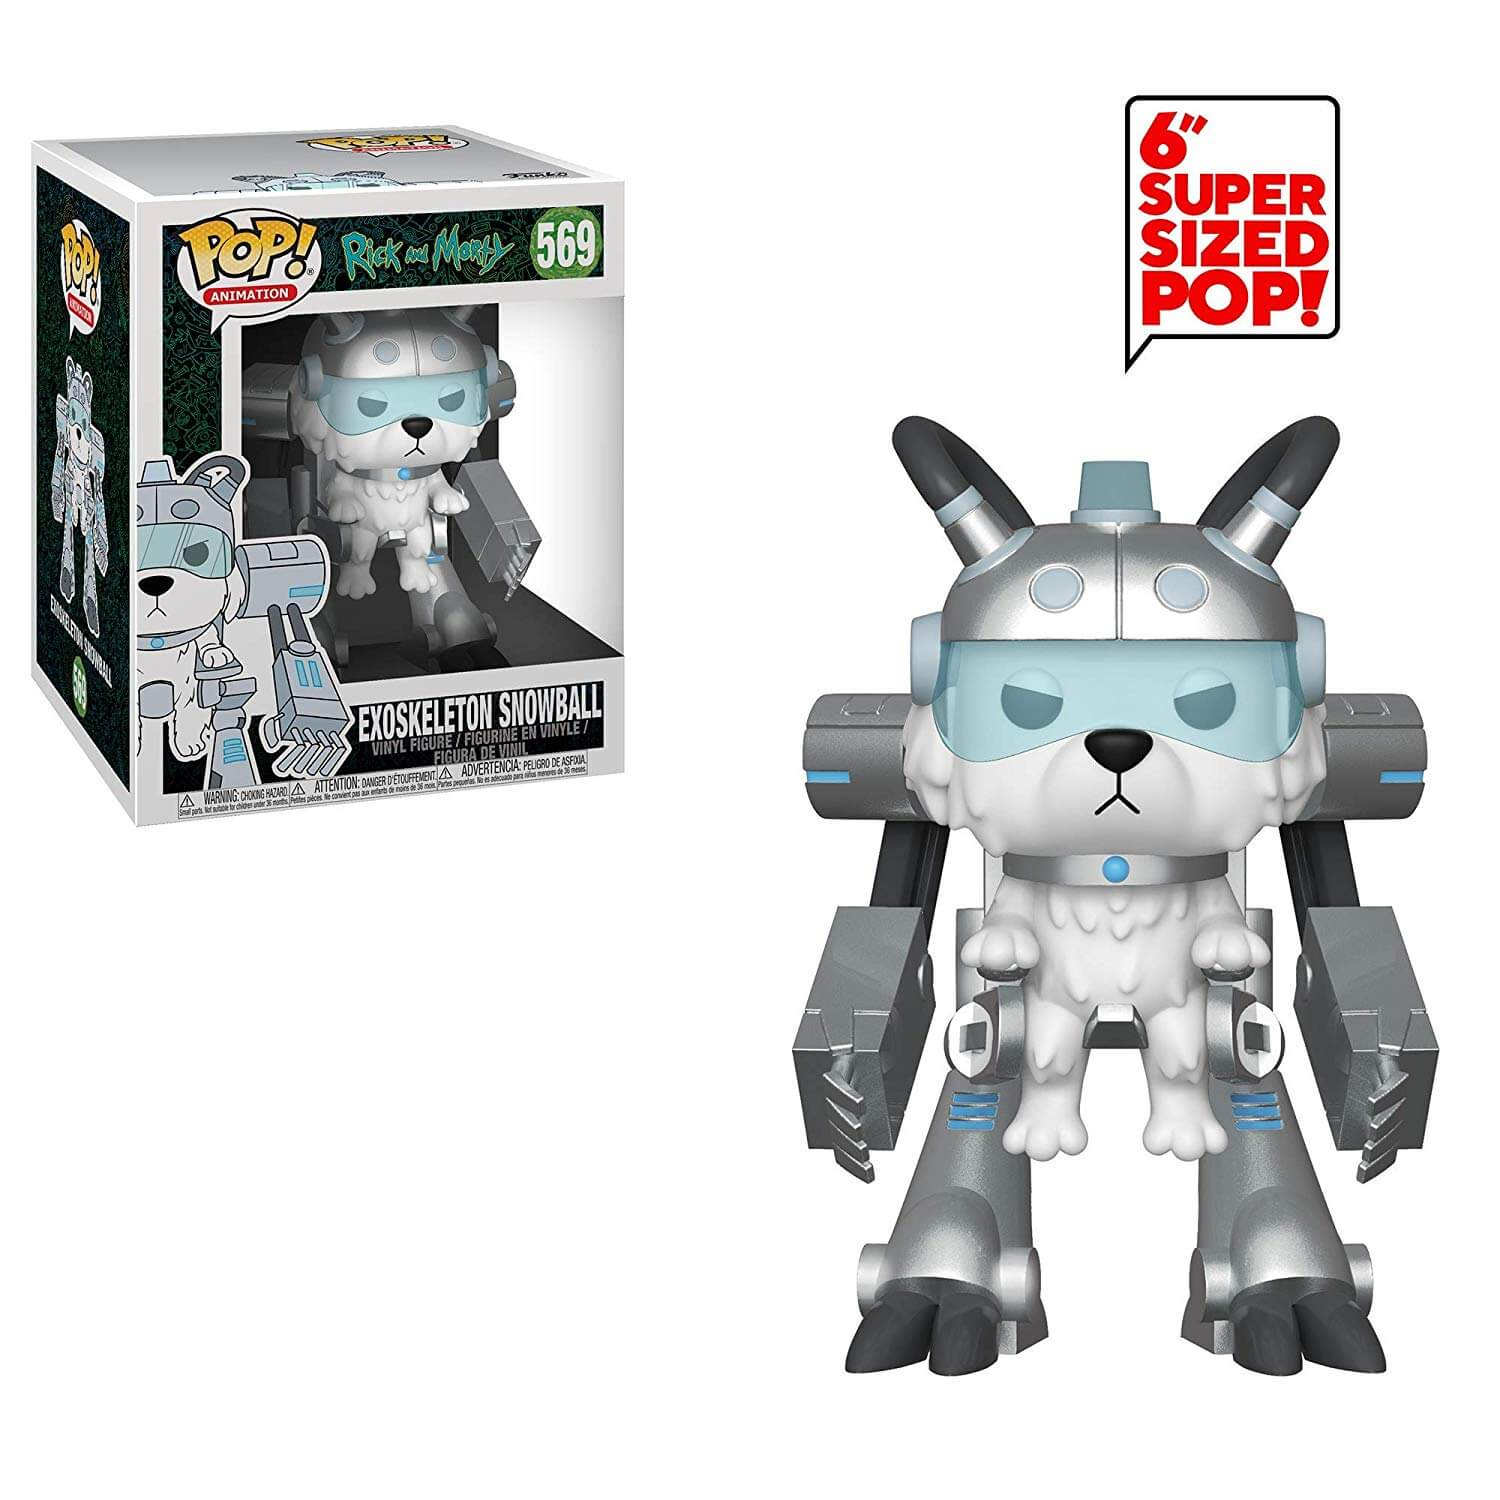 0dec58416bb Rick and Morty Snowball in Mech Suit 6 Inch Pop! Vinyl Figure   Pop In A  Box UK